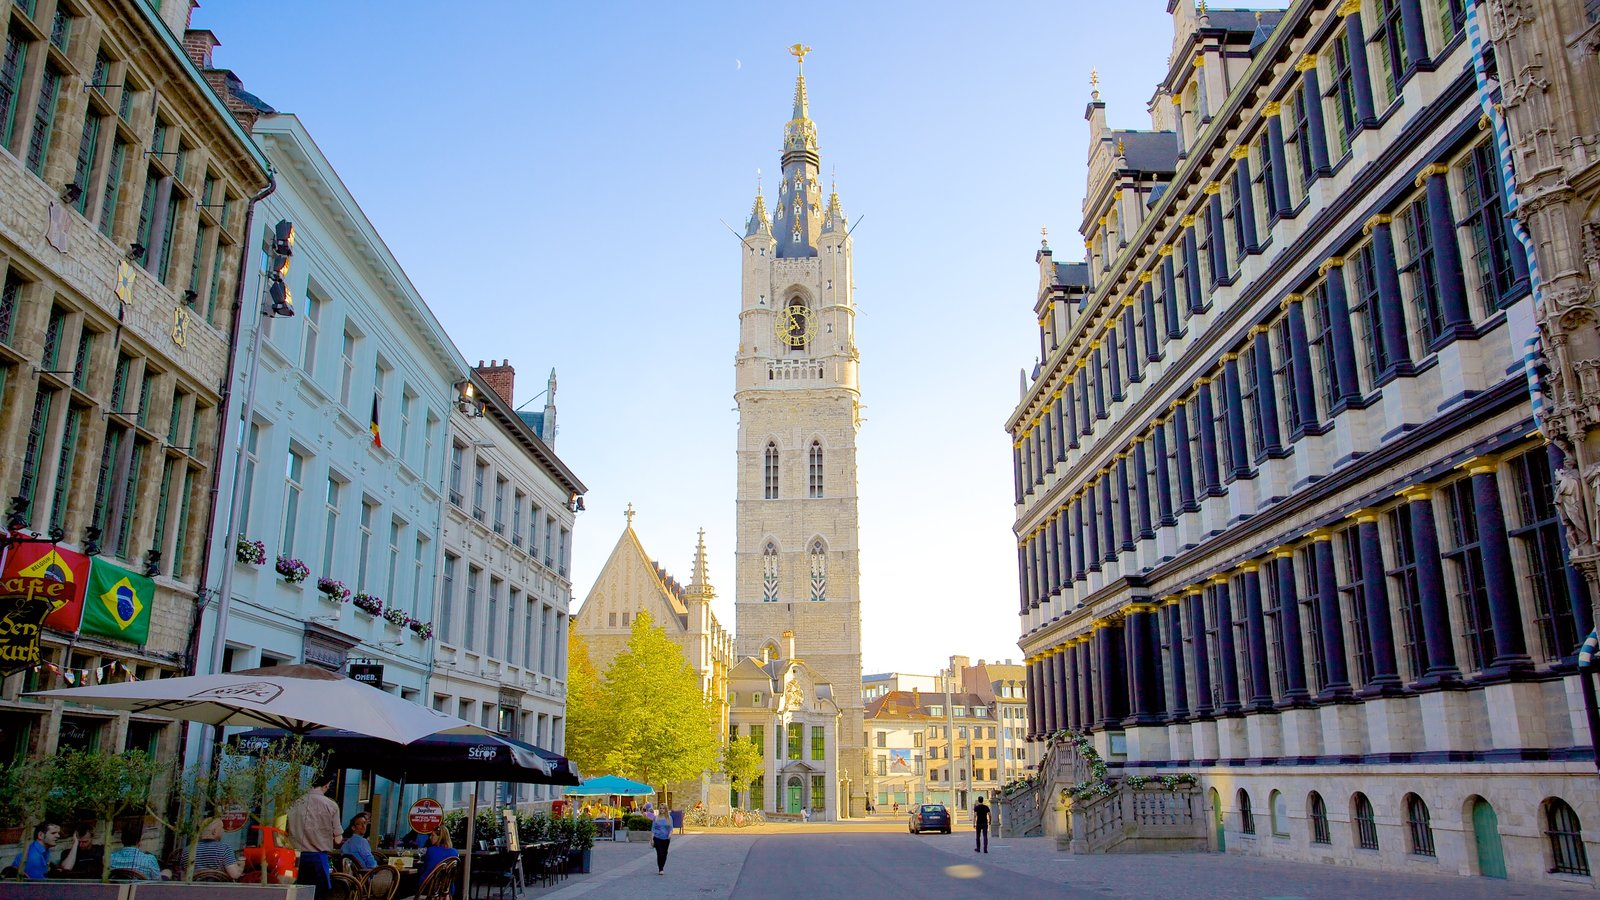 Belfry of Ghent showing a city, street scenes and heritage architecture